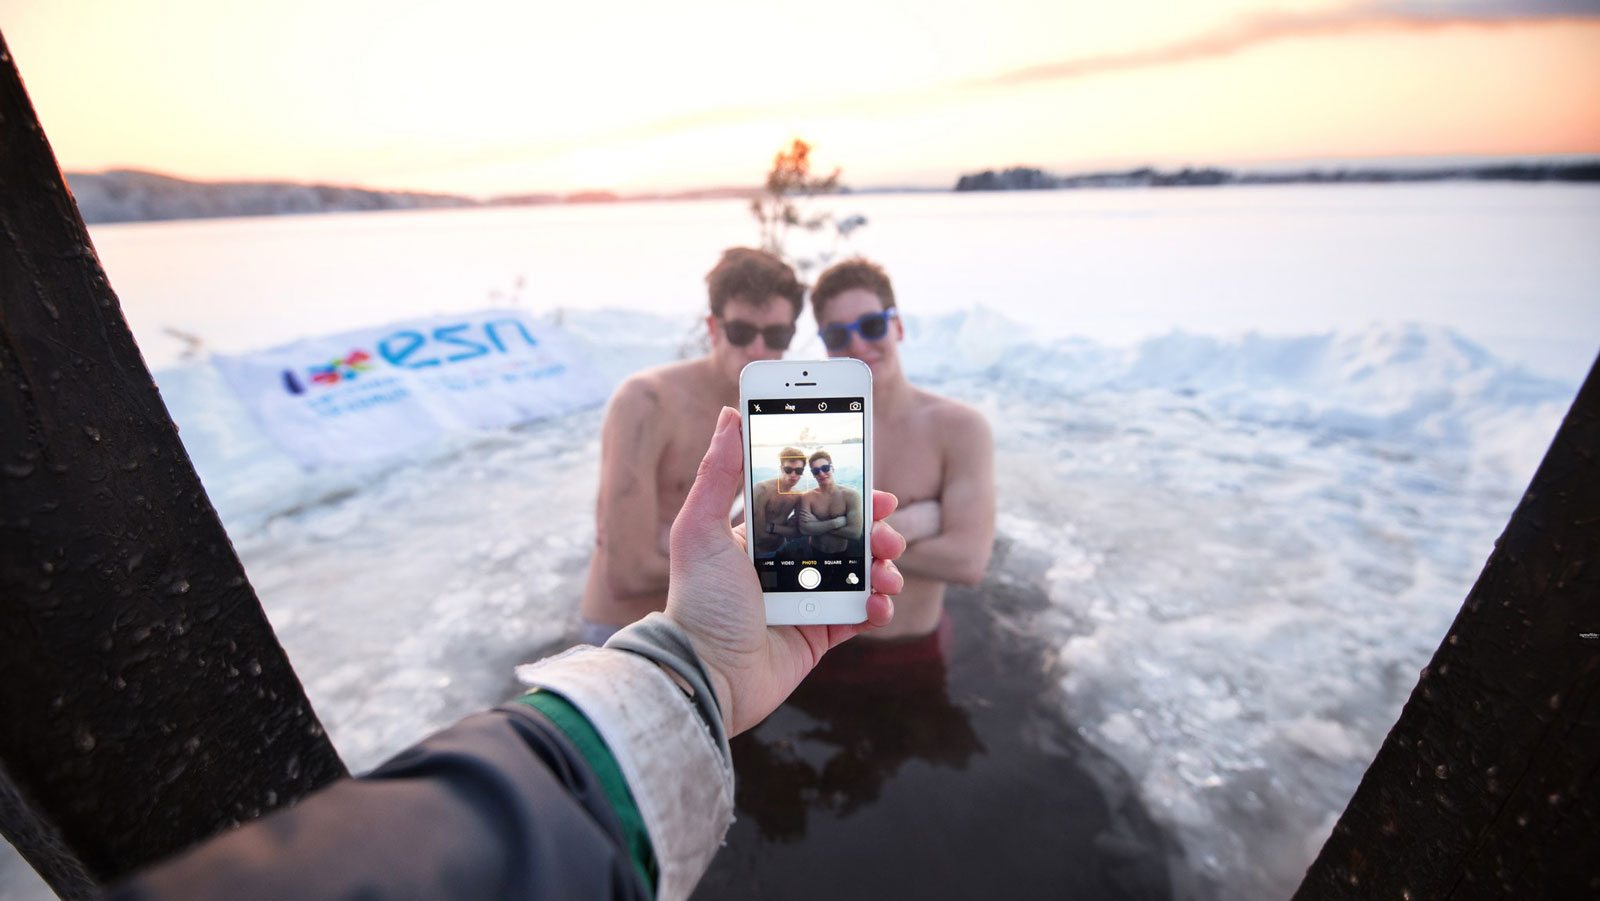 Two persons are being photographed in ice hole in winter.